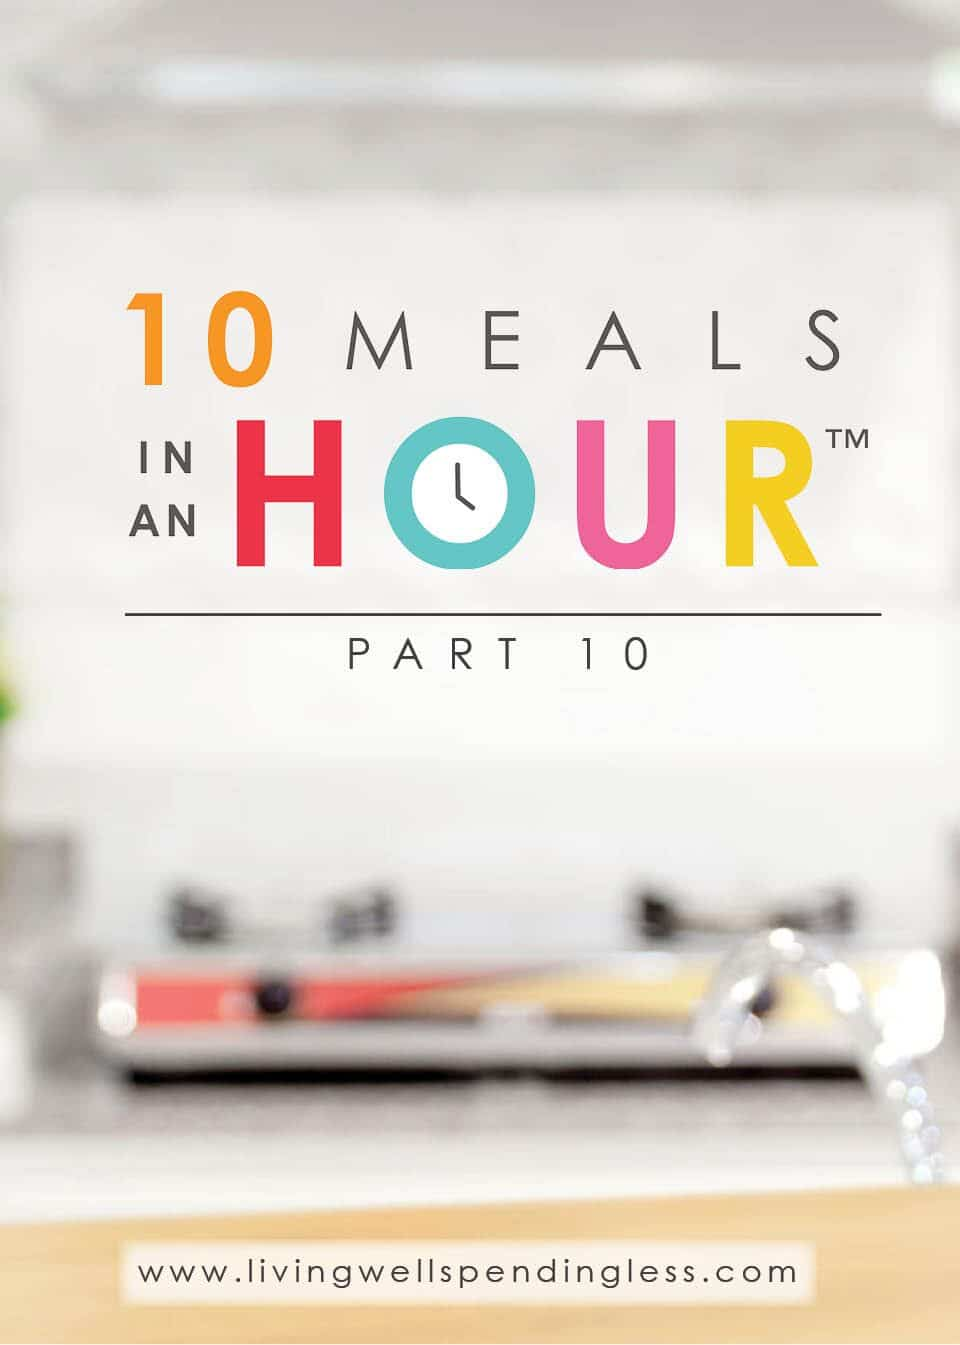 10 Meals in an Hour™ Part 10